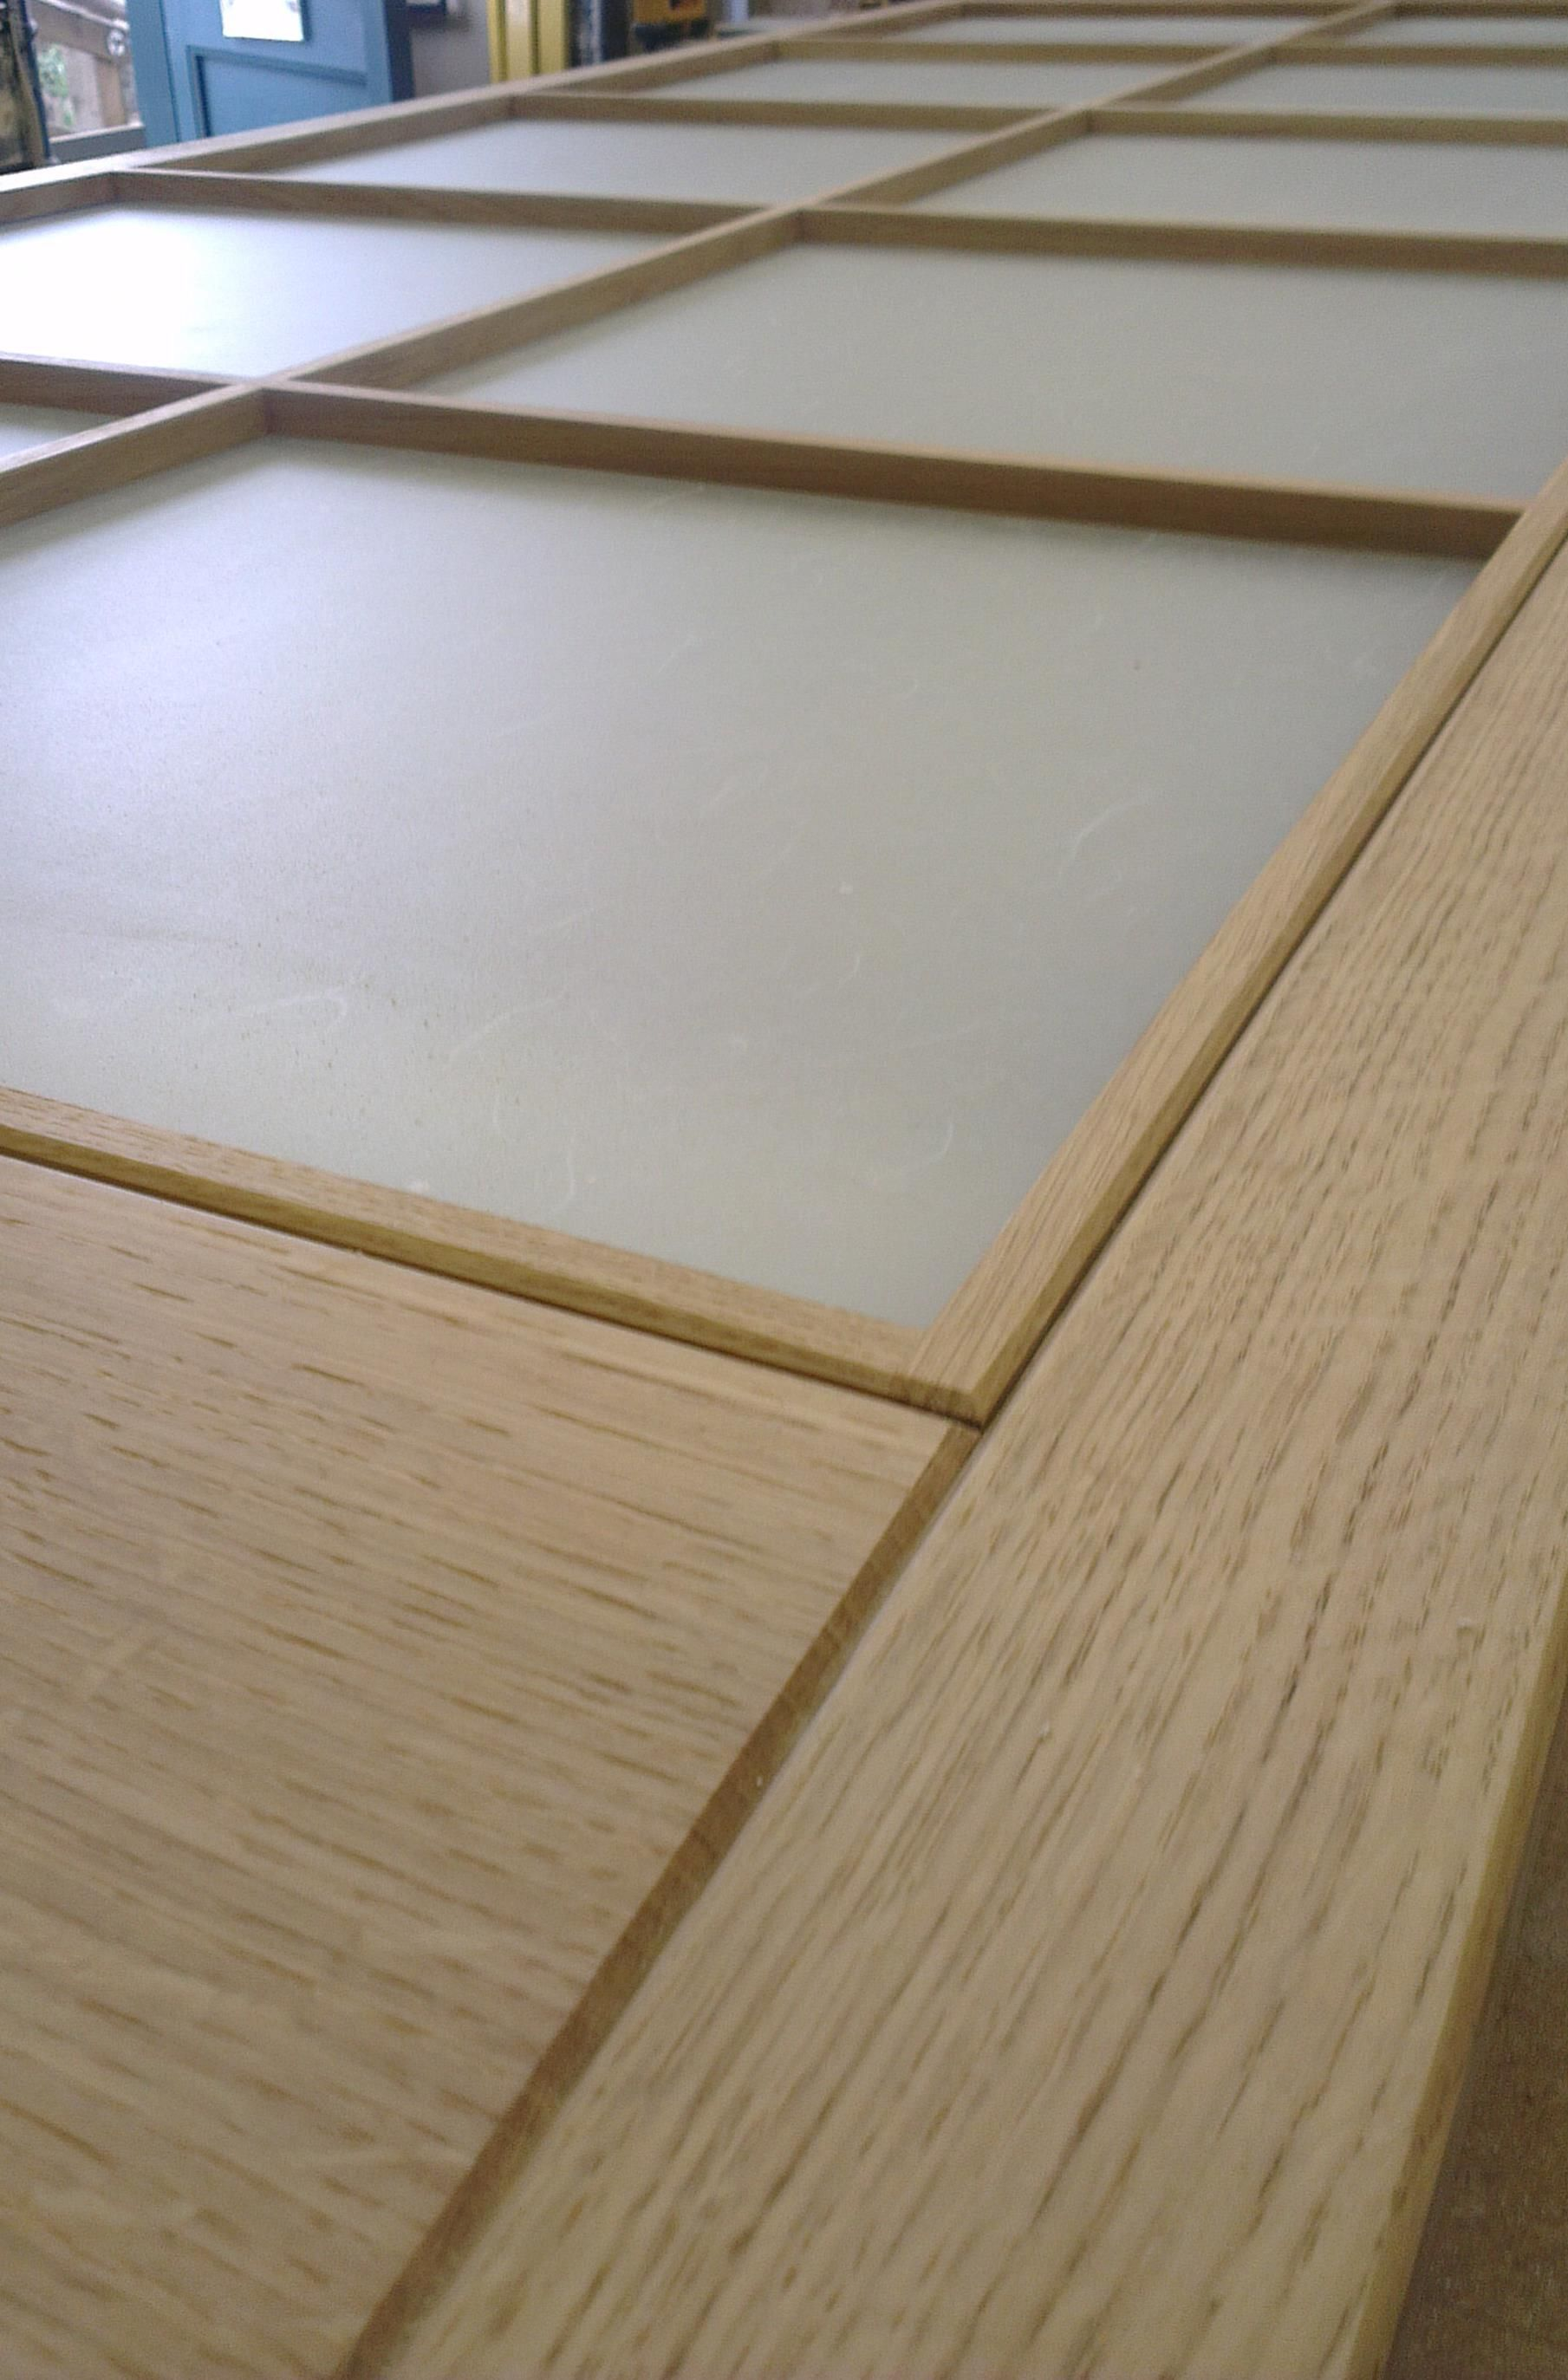 Solid oak natural finish shoji screens with rice paper applied to